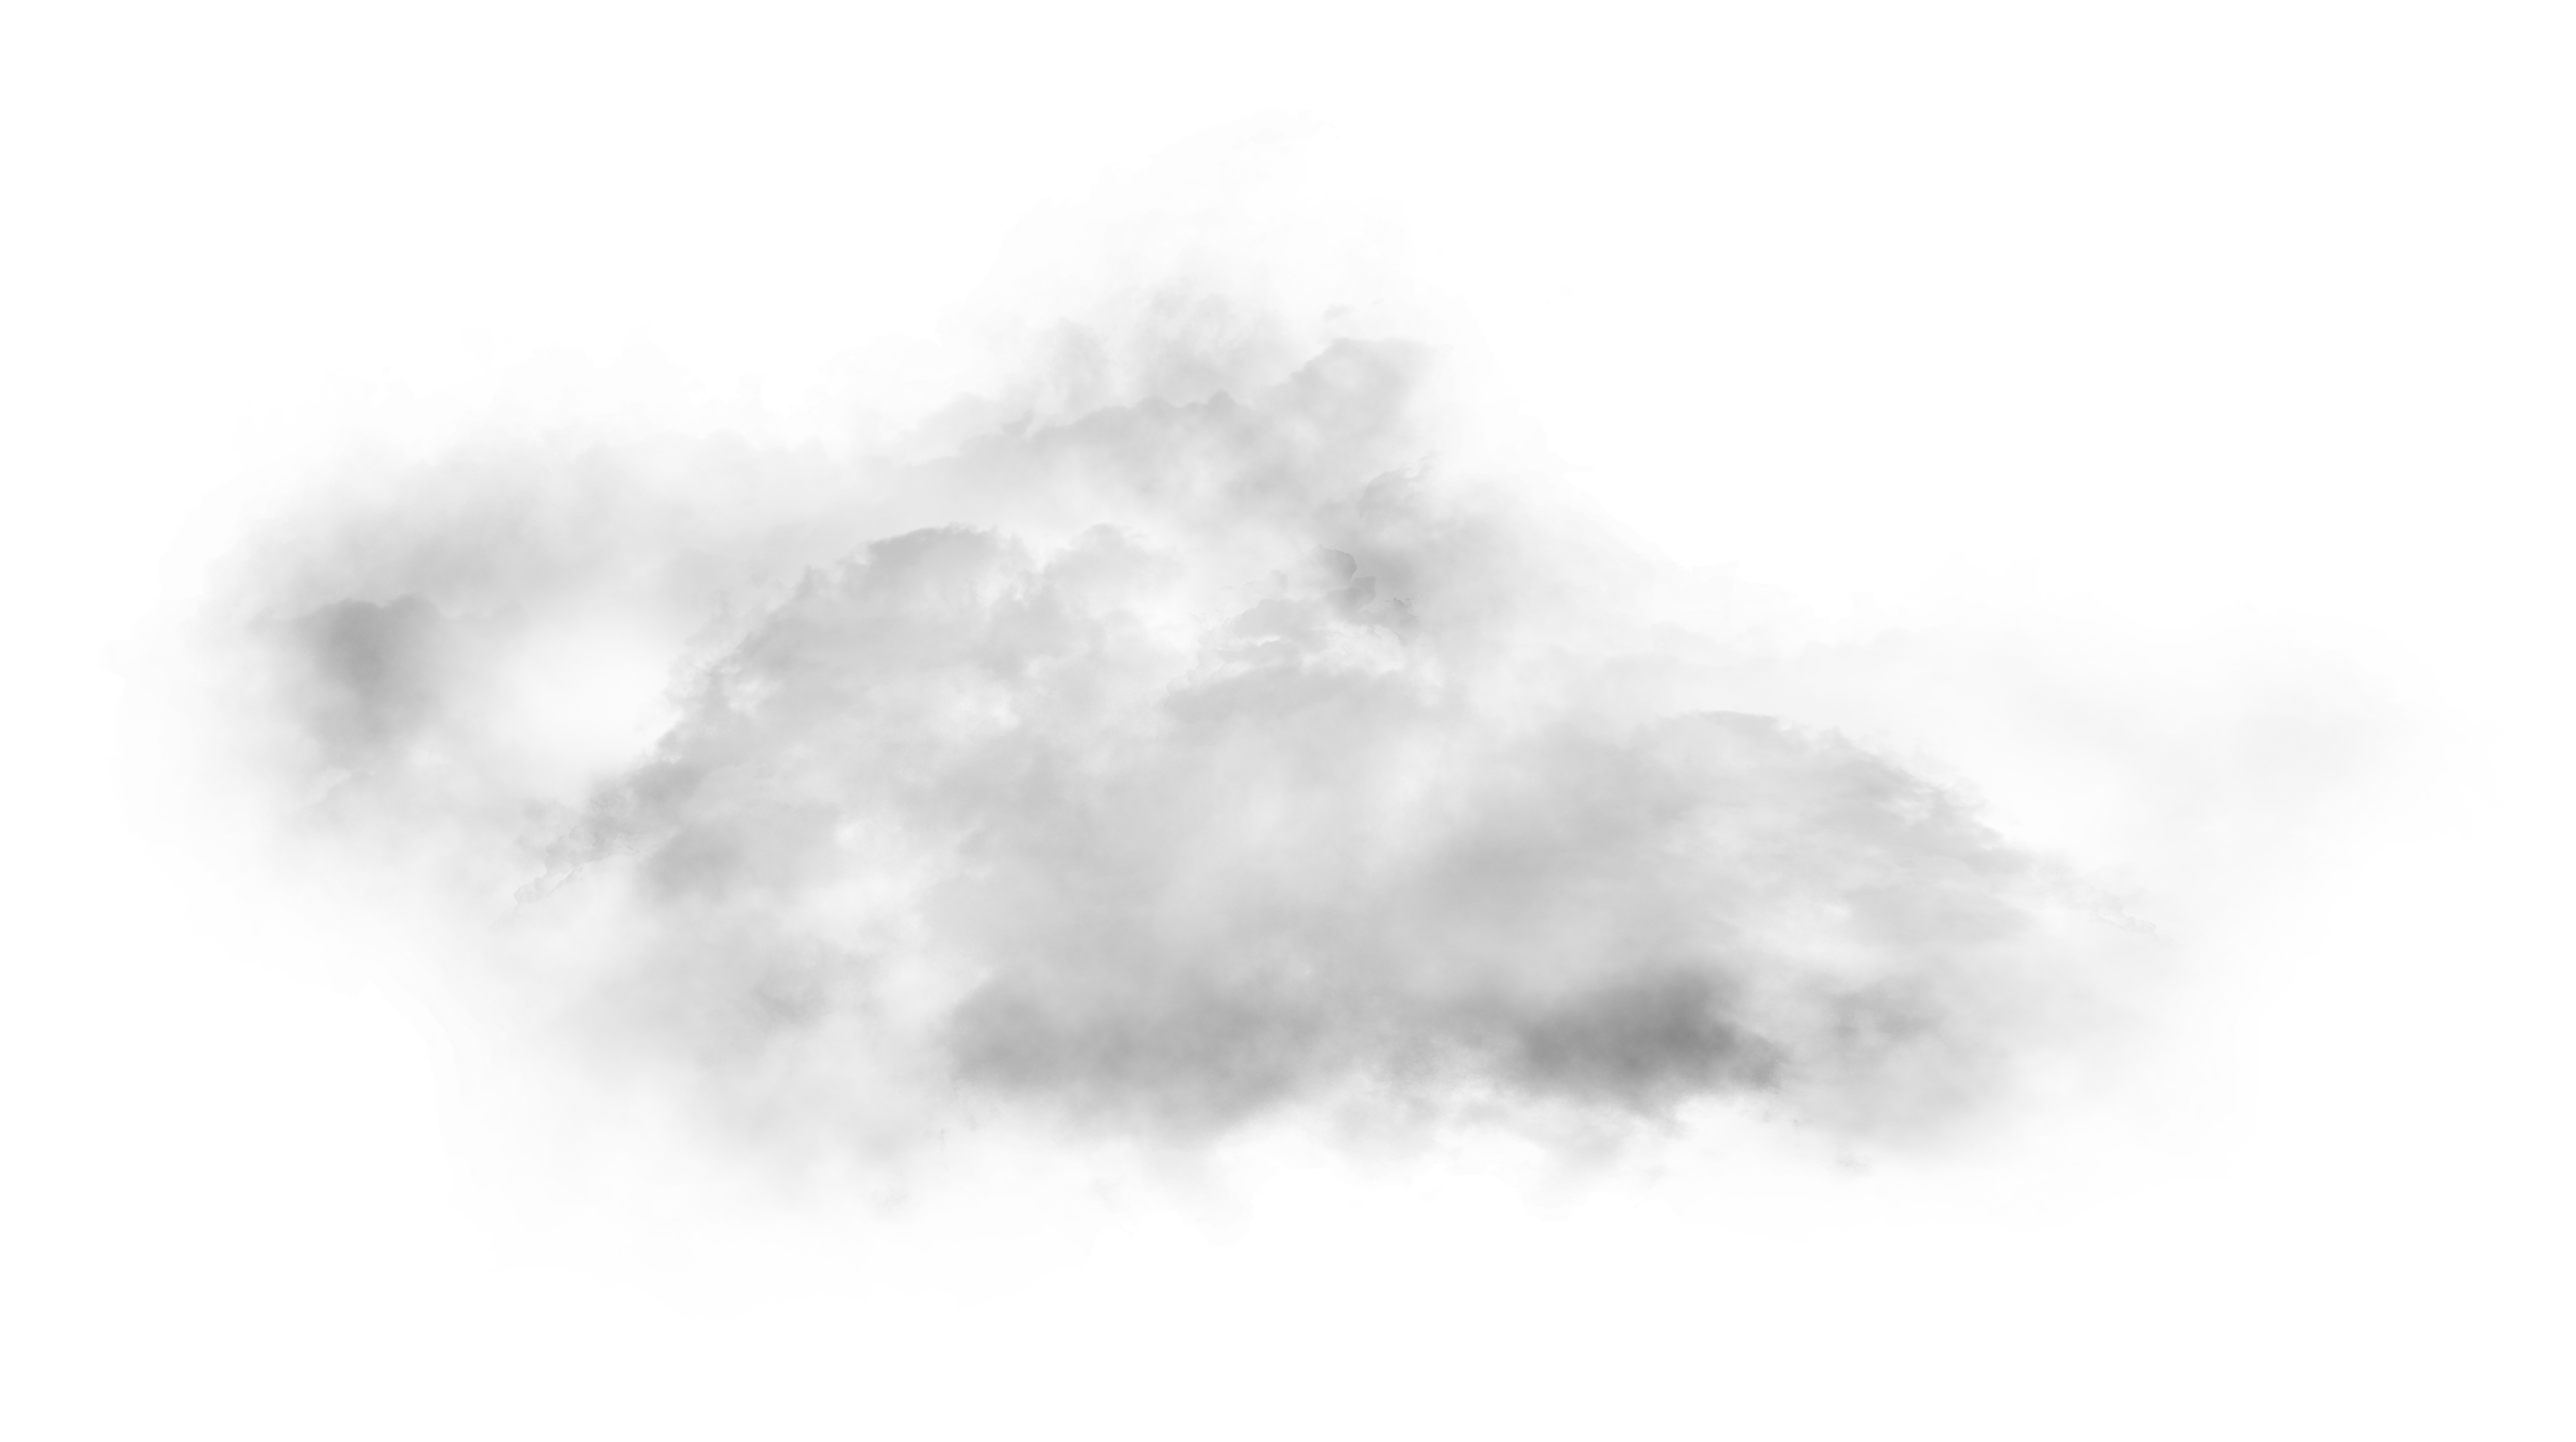 Clouds Free Download Transparent